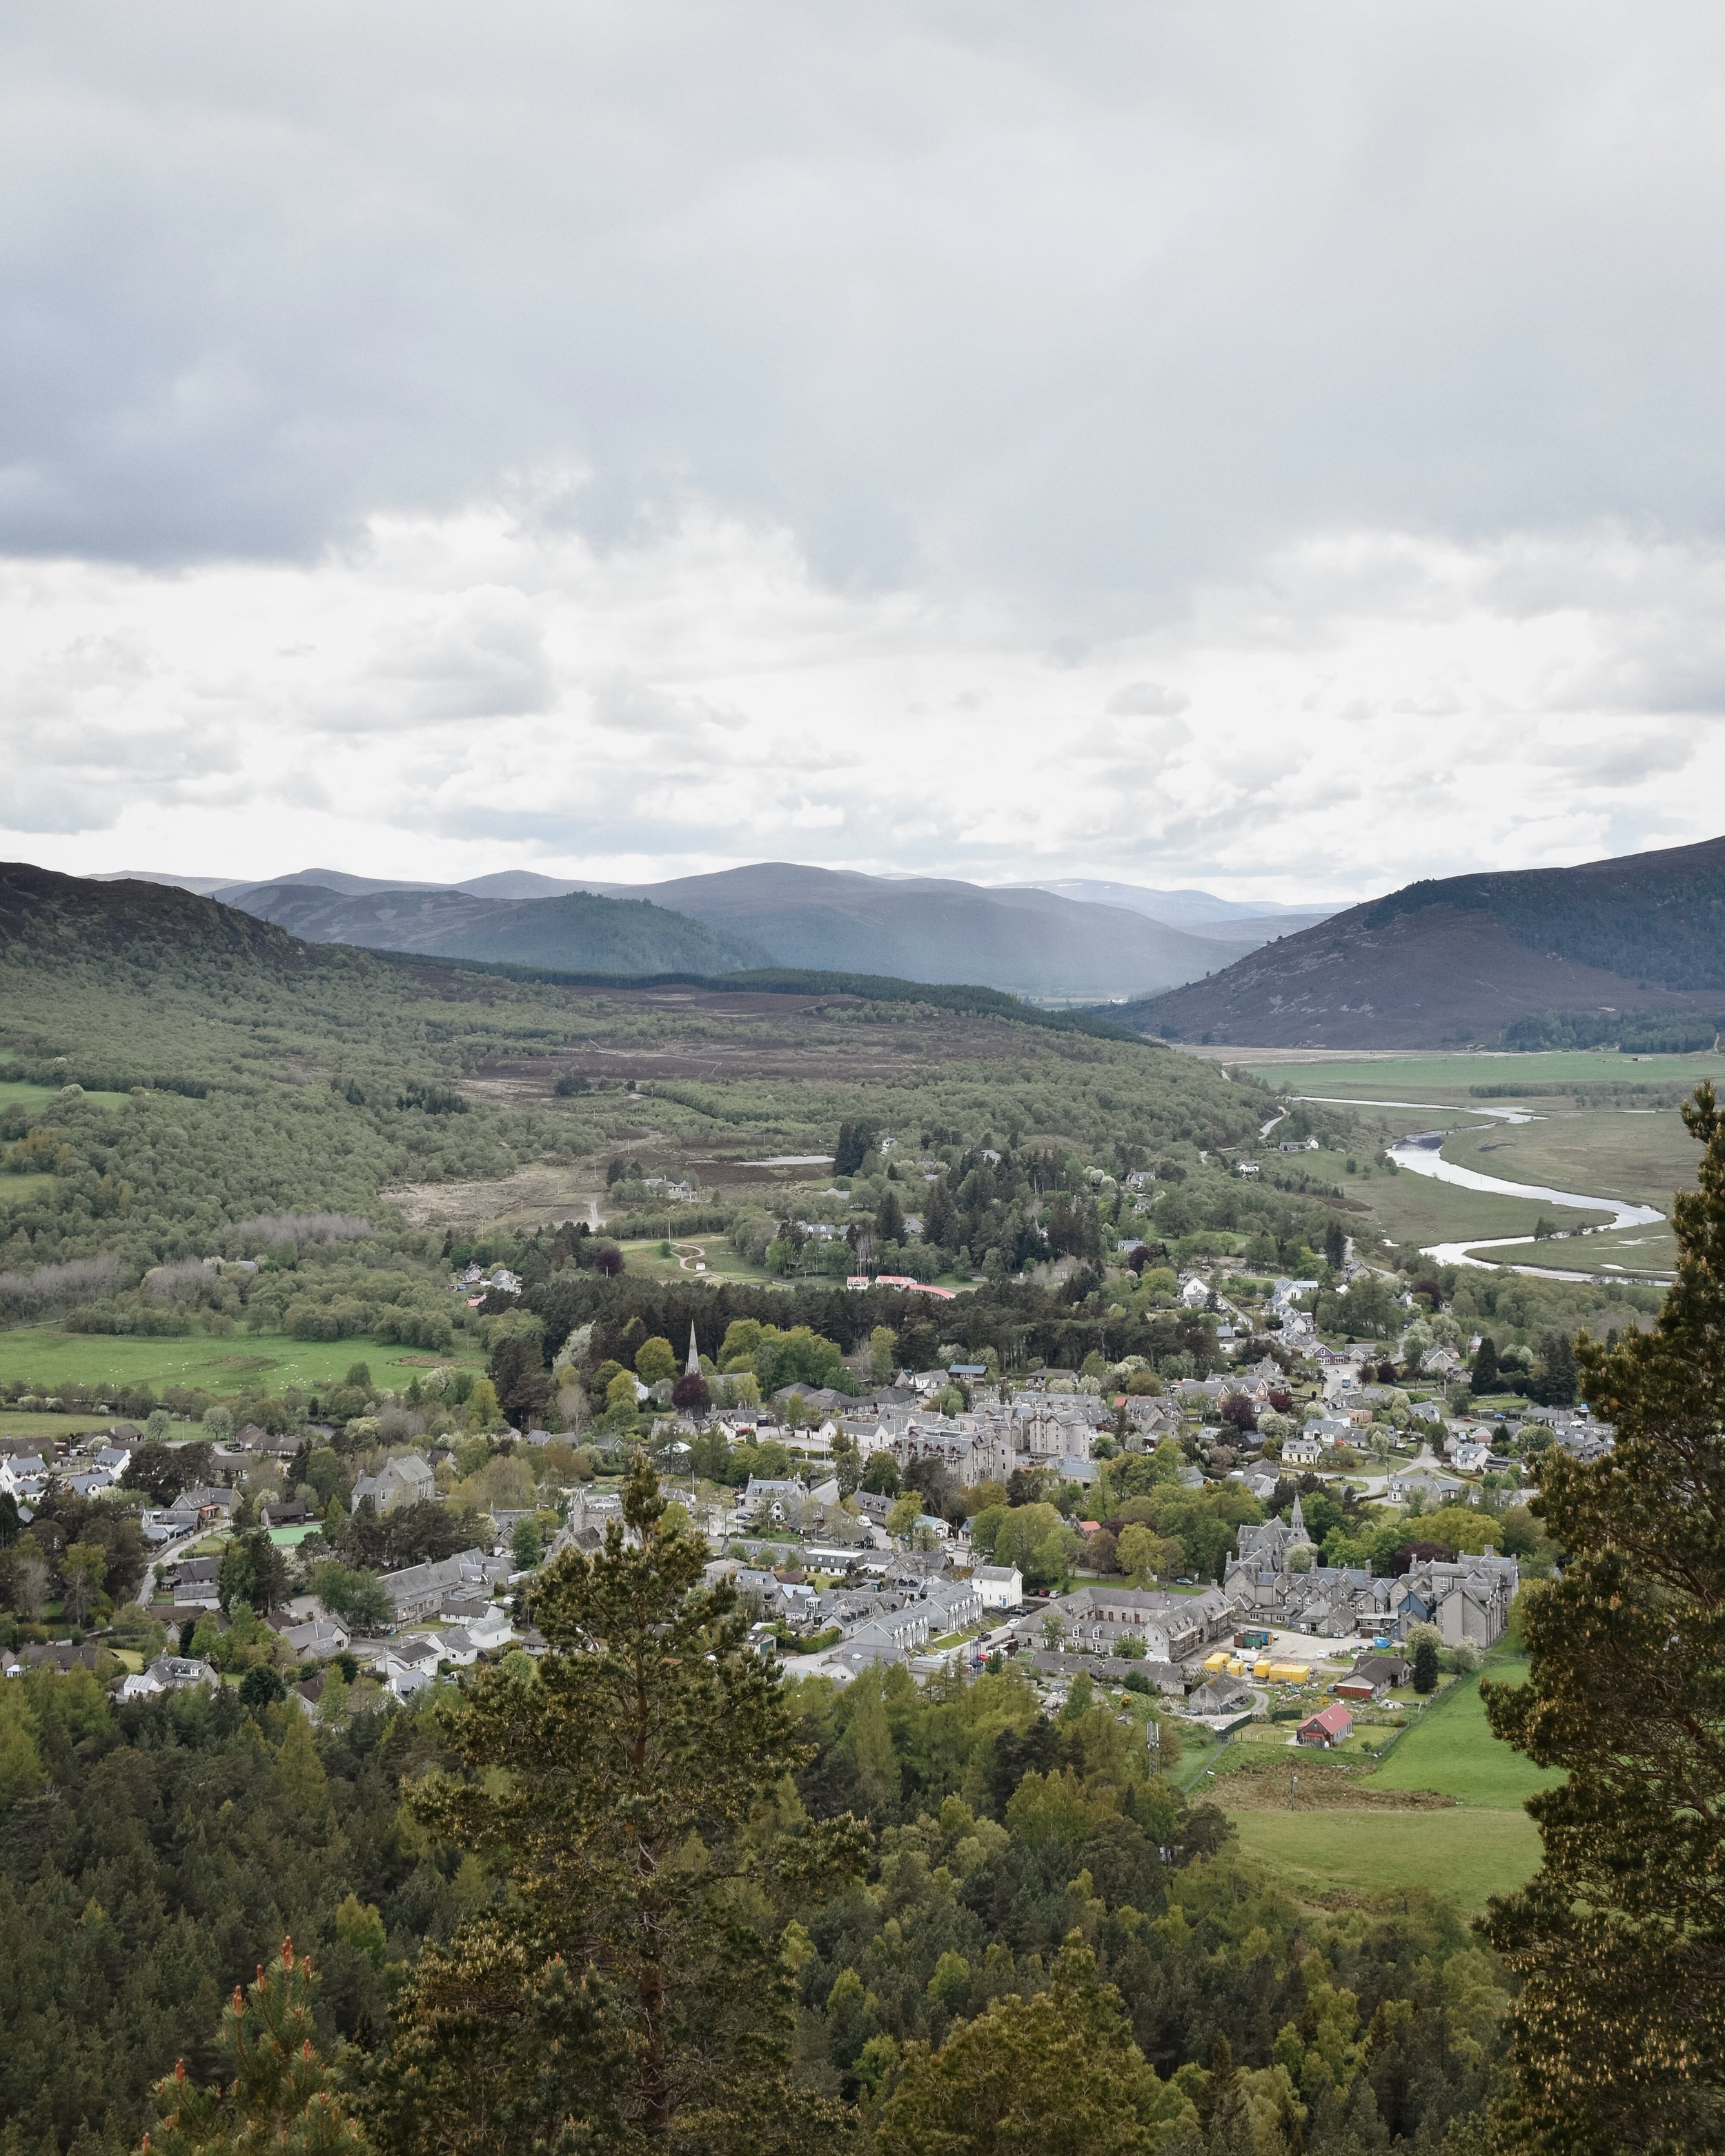 Looking out over Braemar